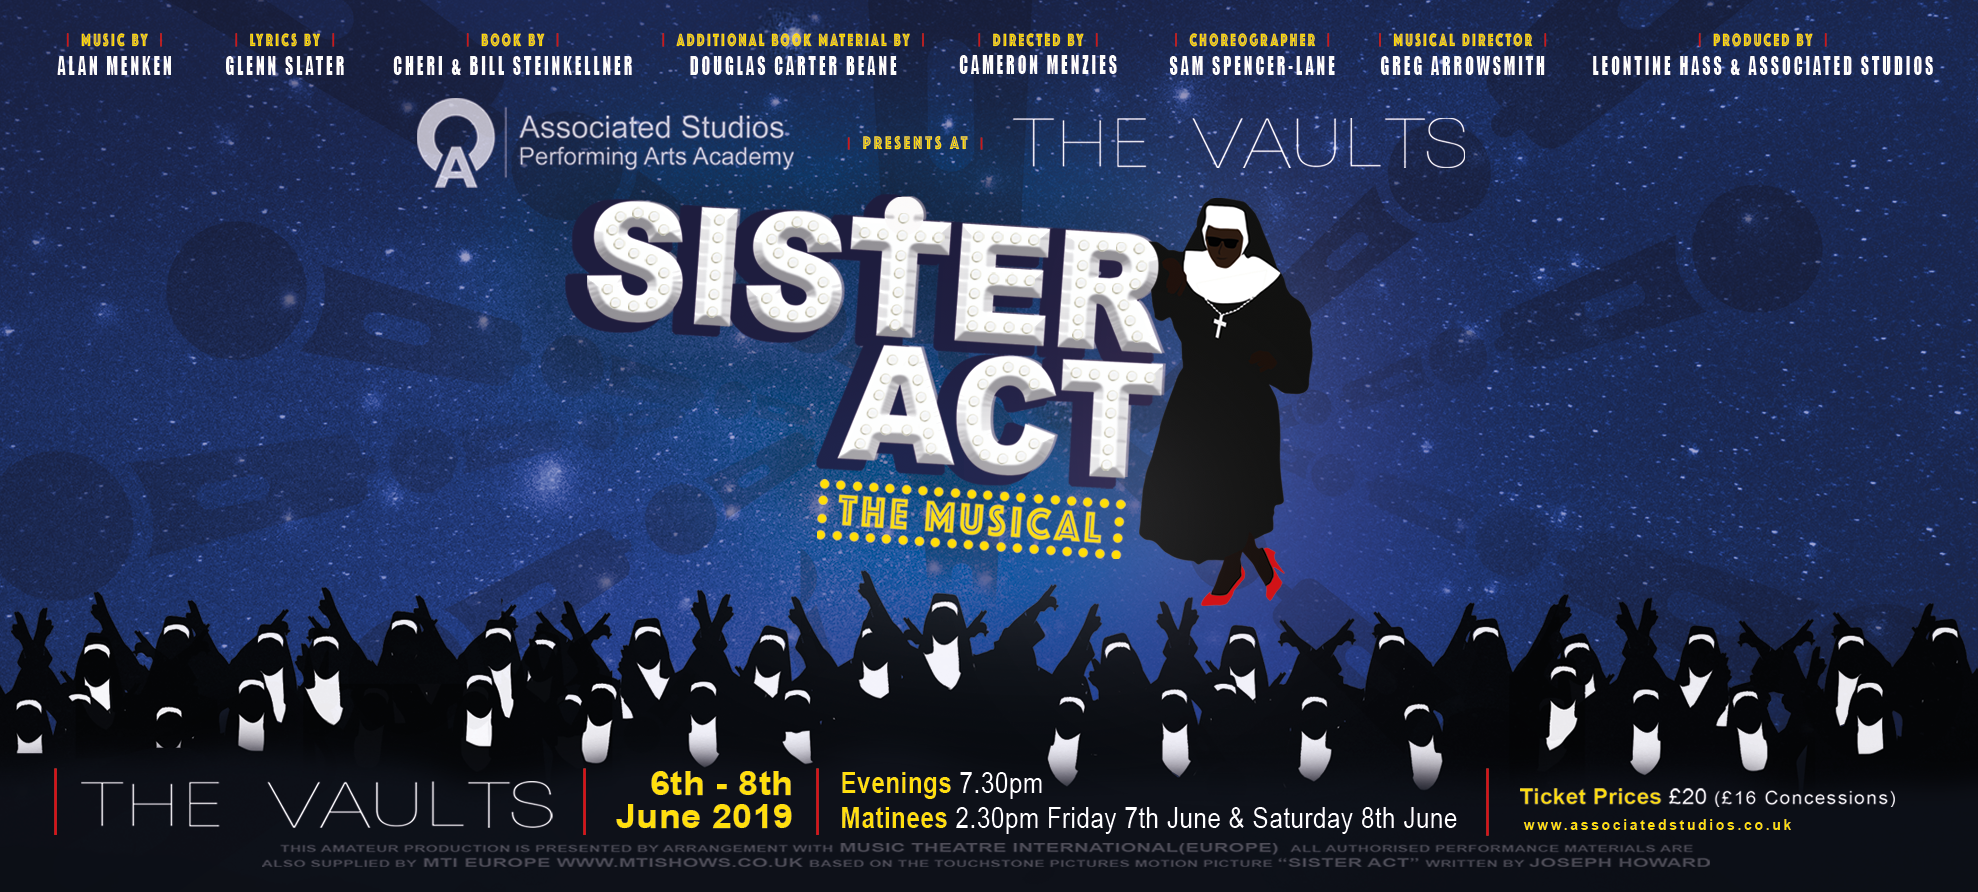 6-8th June - Justina Kehinde stars in Associated Studios production of Sister Act the Musical. Vaults Theatre, London. Tickets